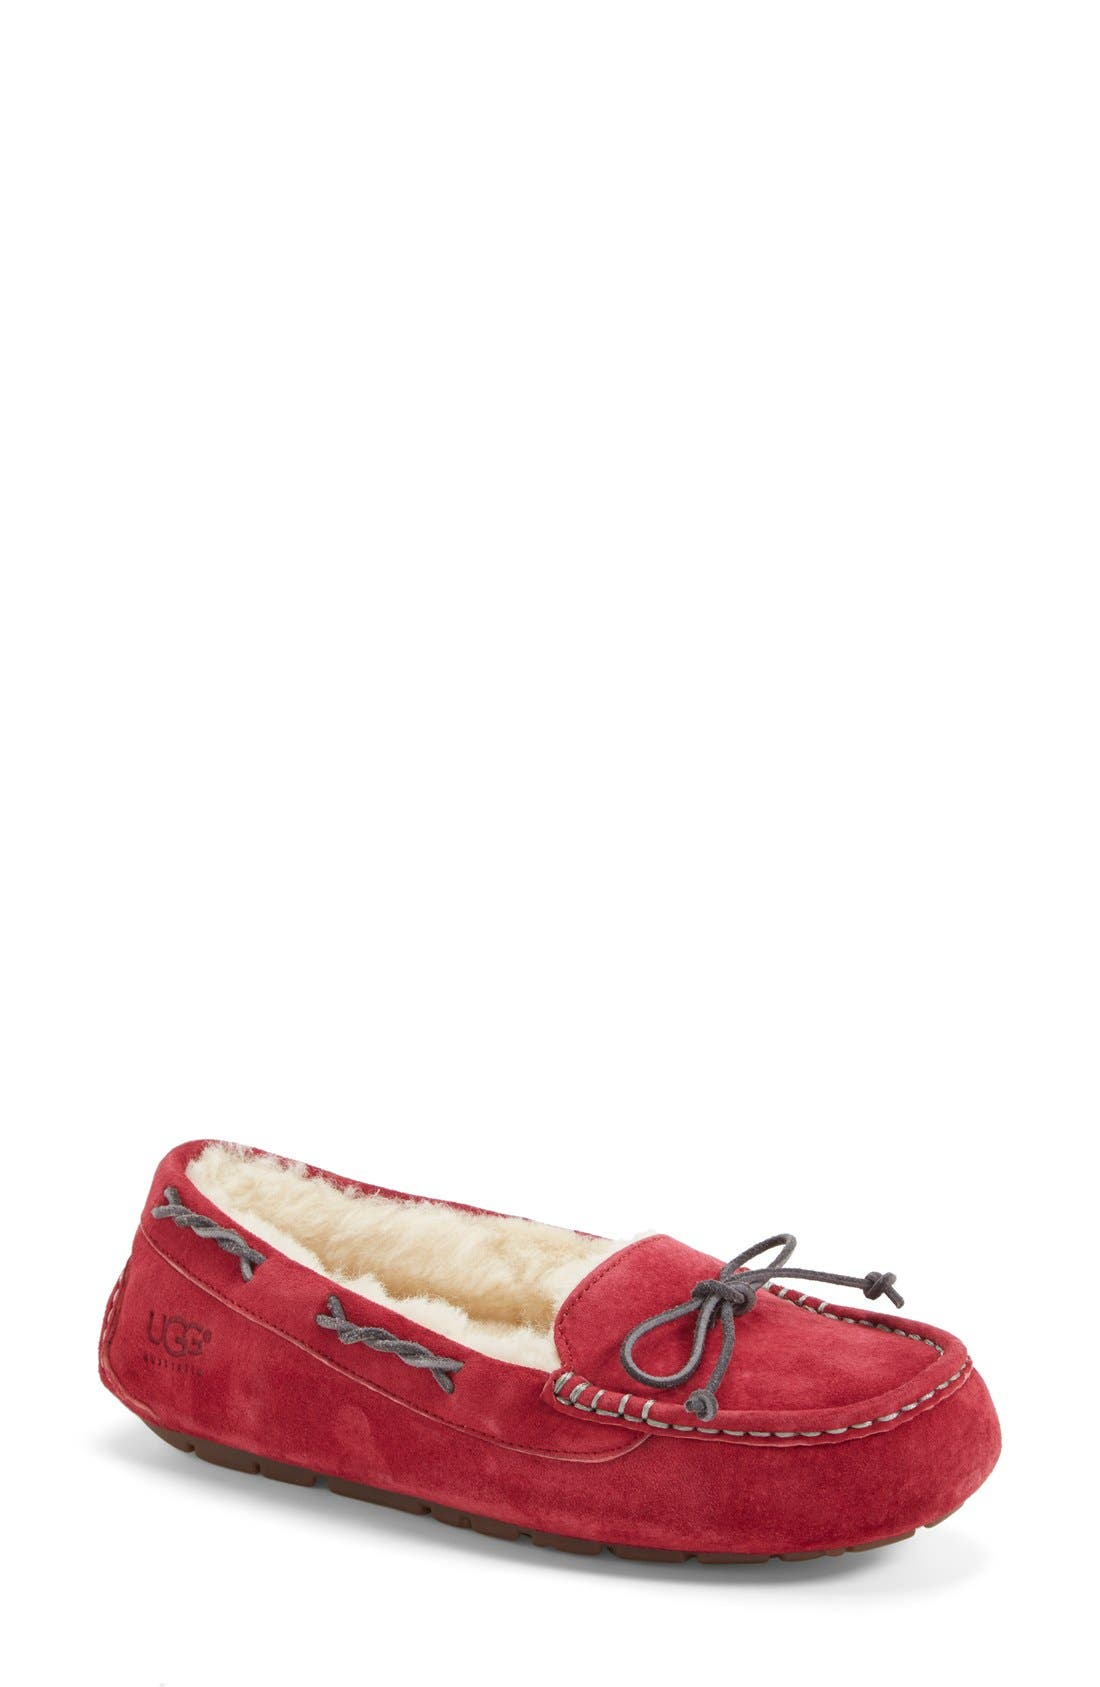 Alternate Image 1 Selected - UGG® Australia 'Tate' Slipper (Women)